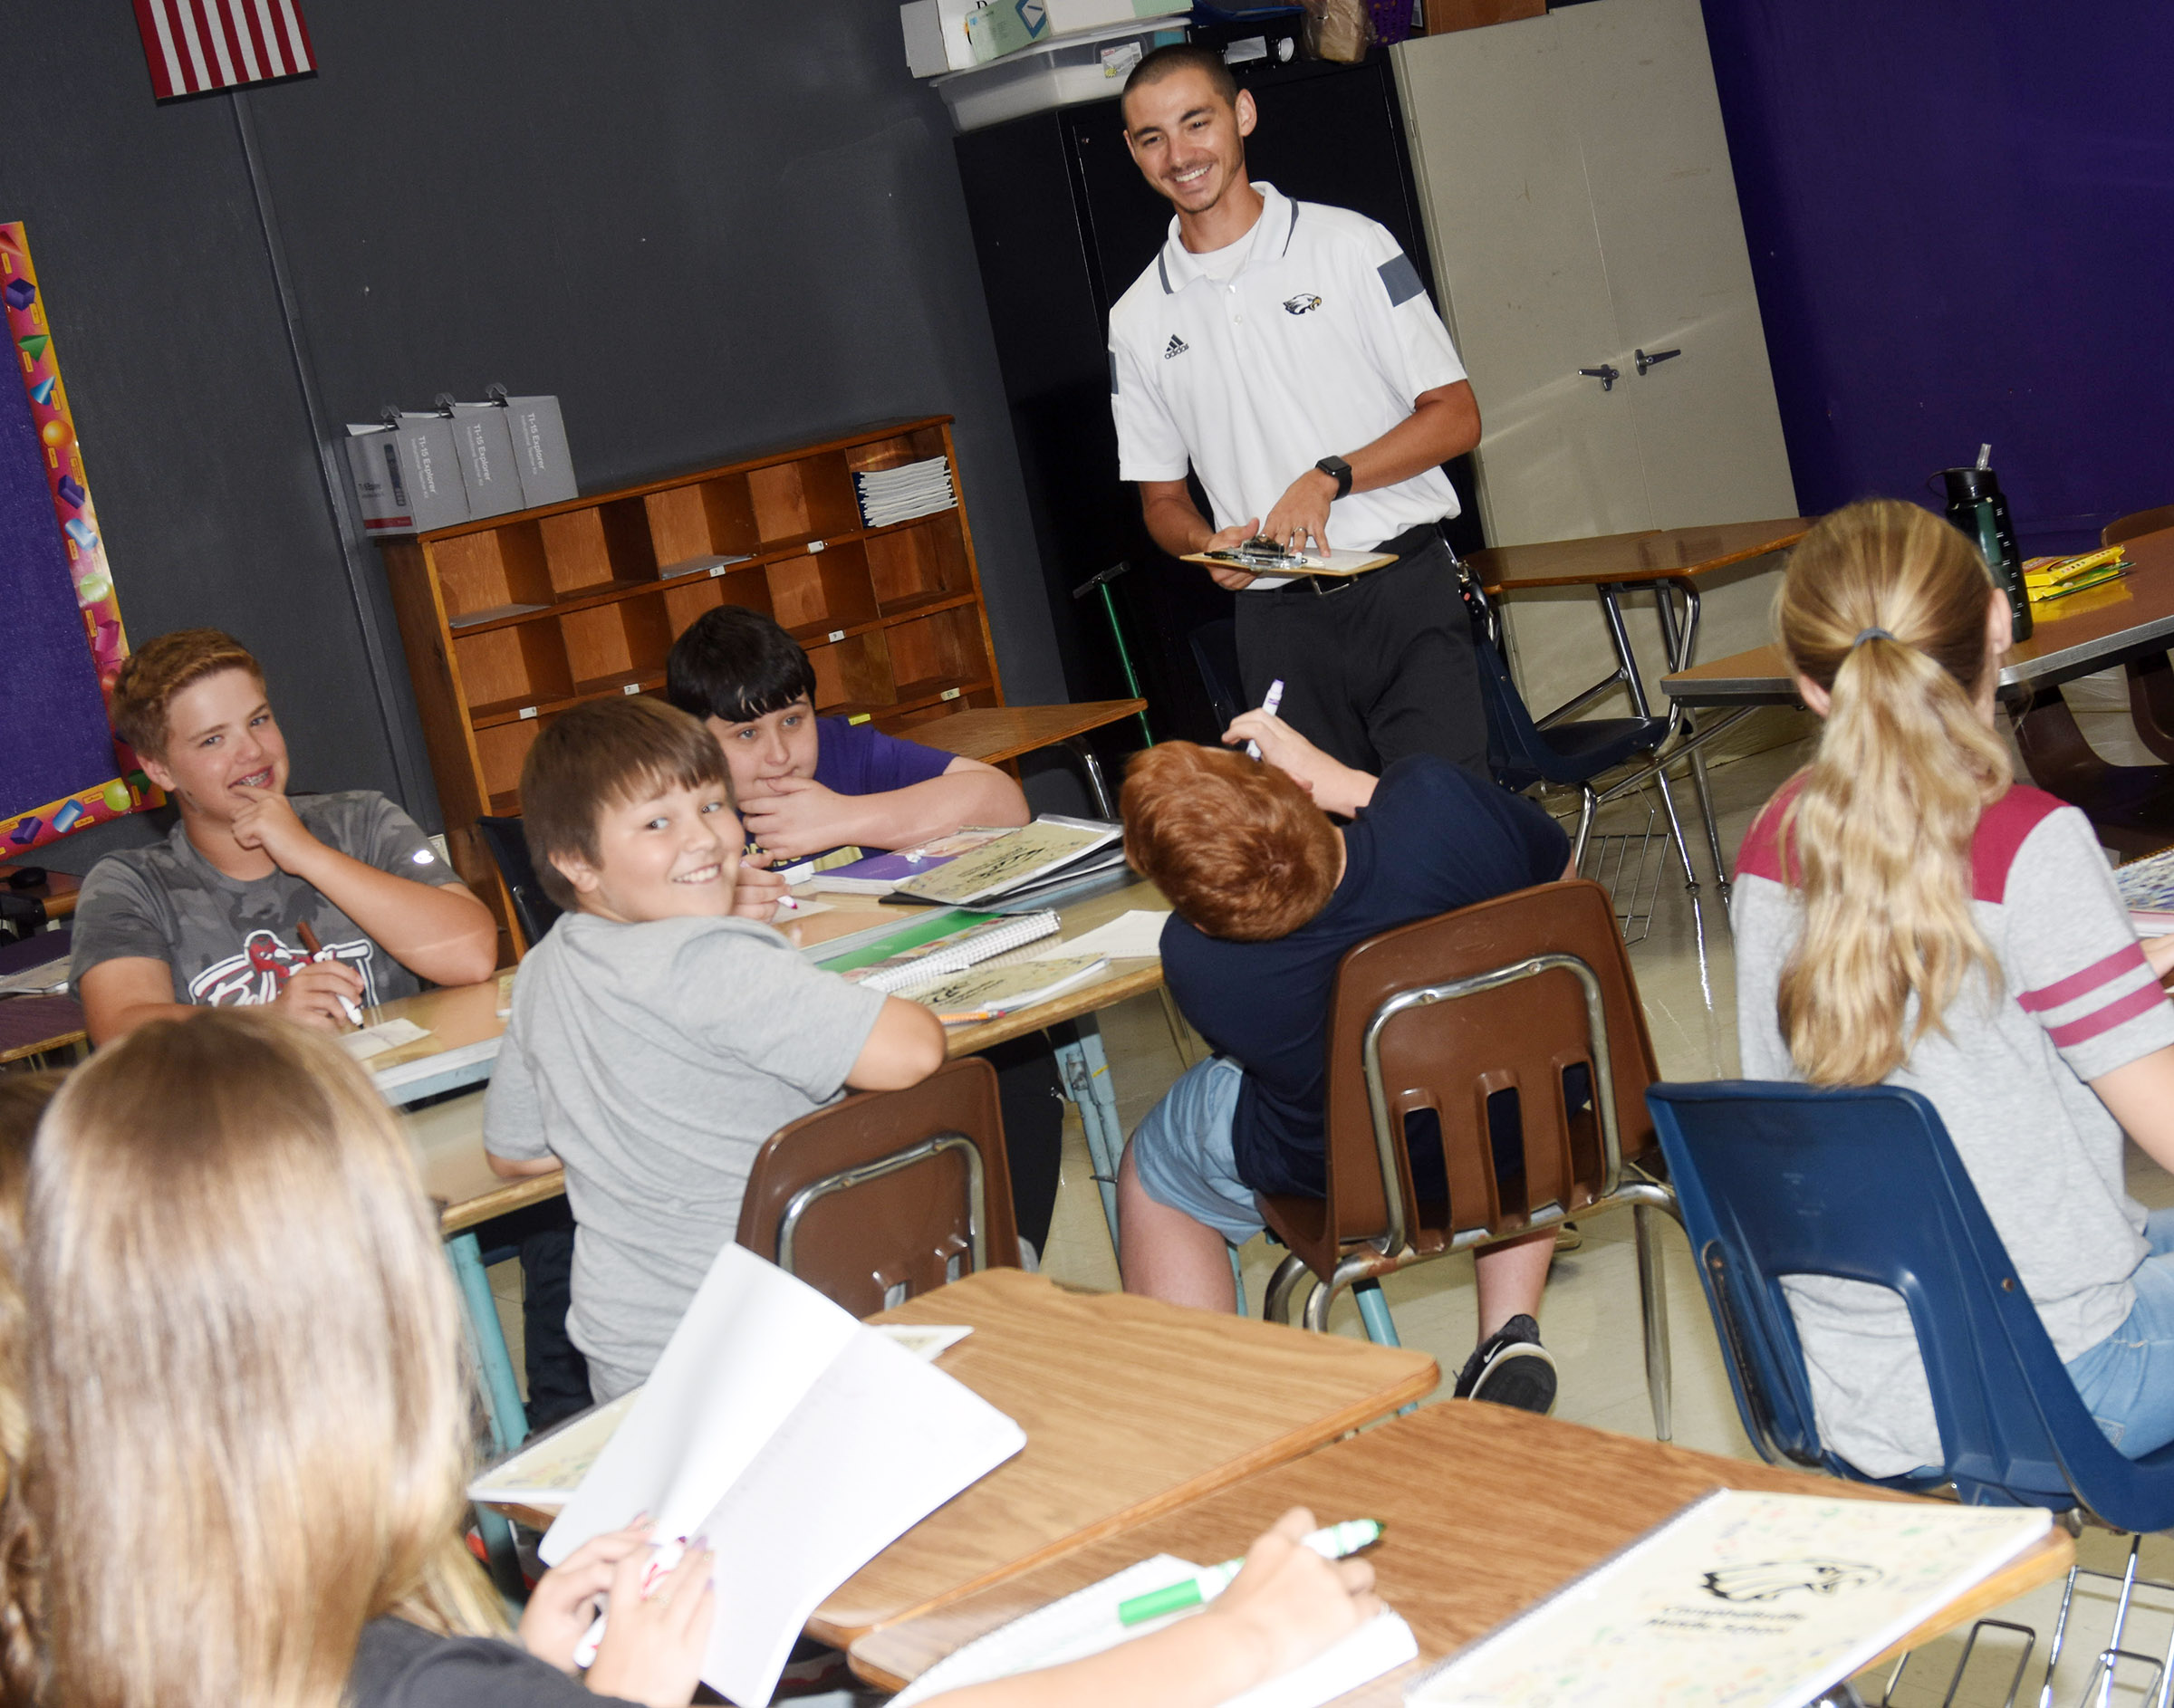 Campbellsville Middle School seventh-grade teacher Bradley Harris plays a game with his students to see how well they know each other.